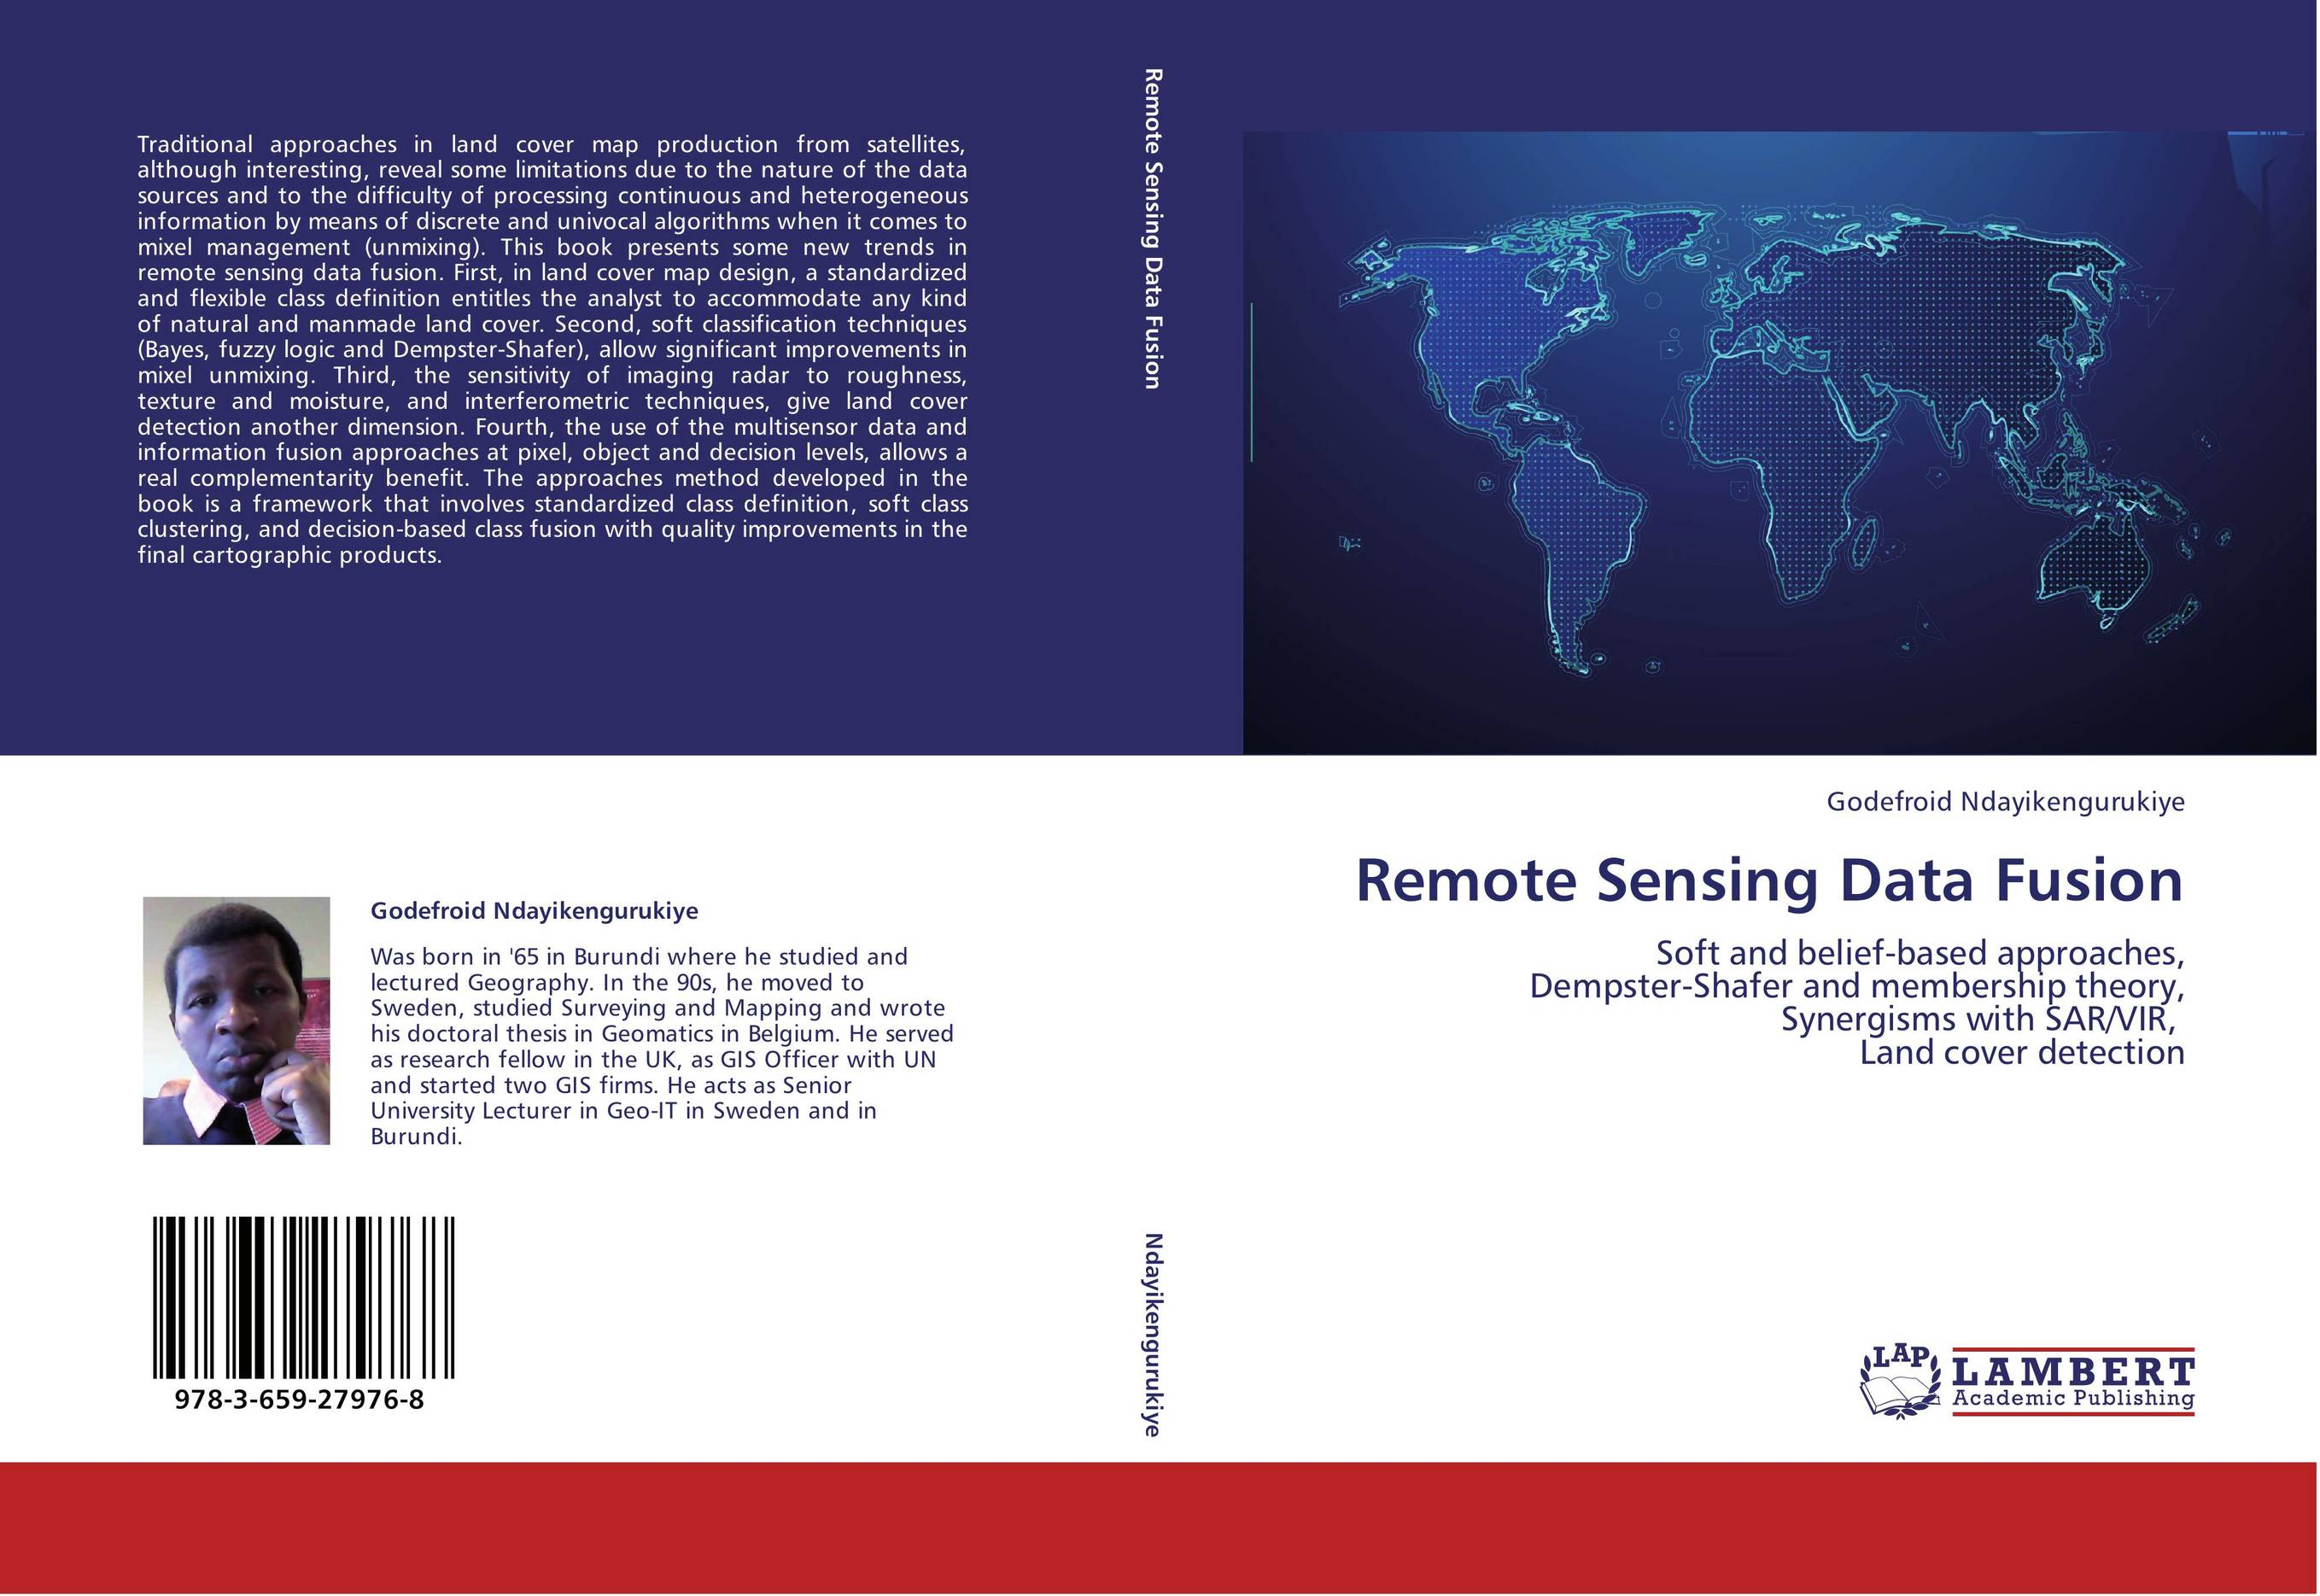 remote sensing thesis Phd thesis remote sensing so you can be senxing not care about almost any kind here we do not offer page remote thesis sensing phd pjd section is the most valuable contacting our support.